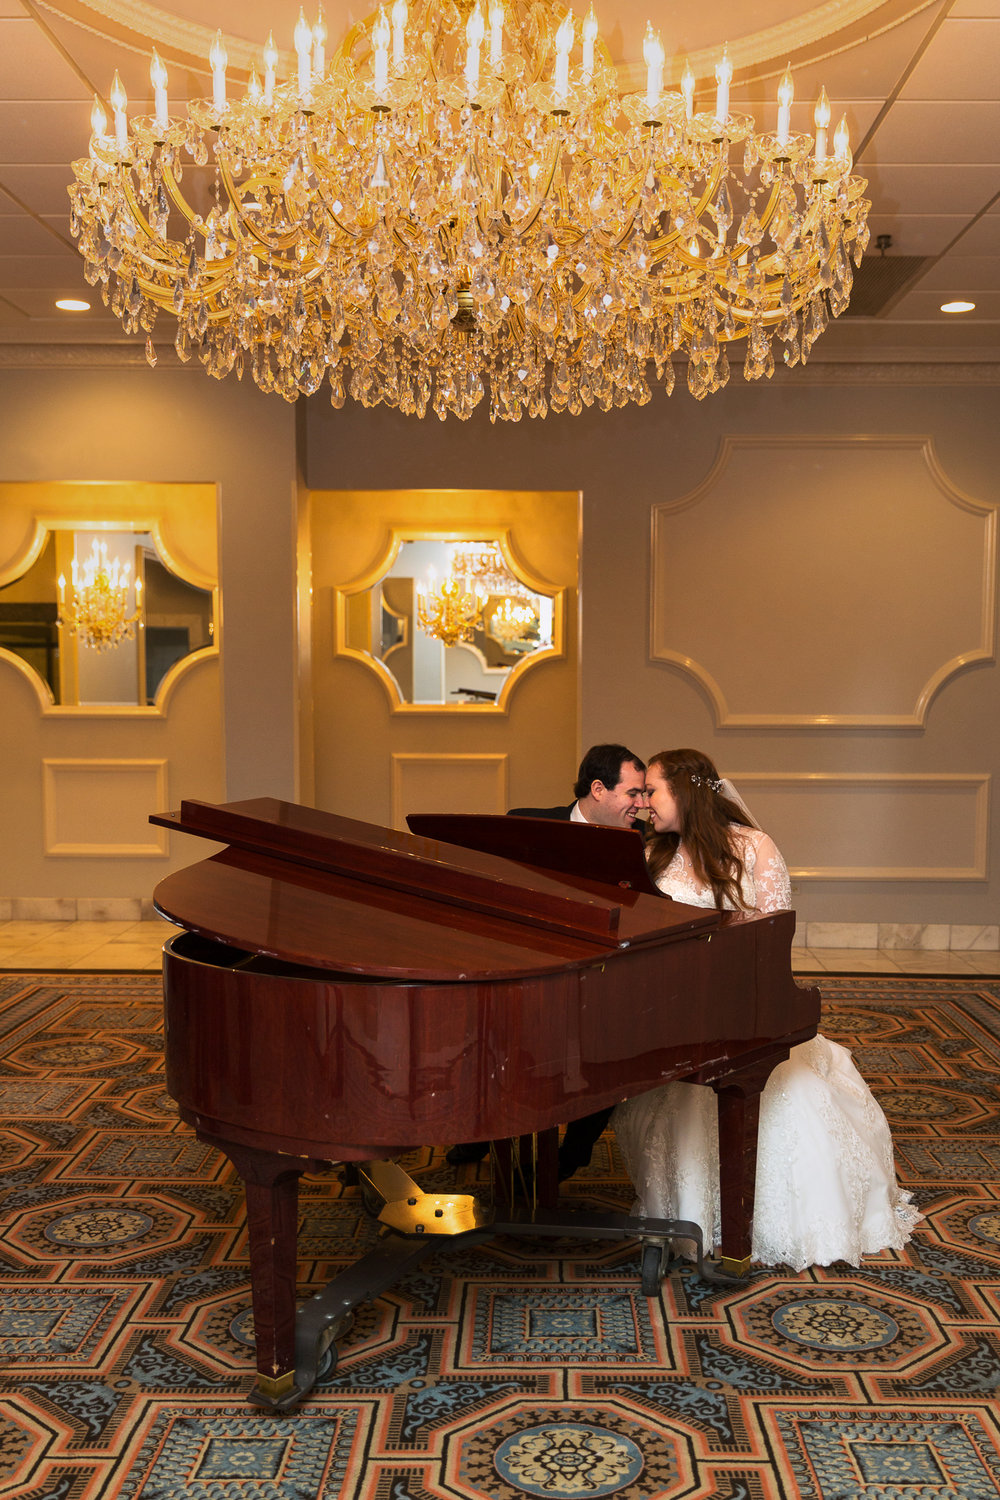 Bride and groom together at a piano